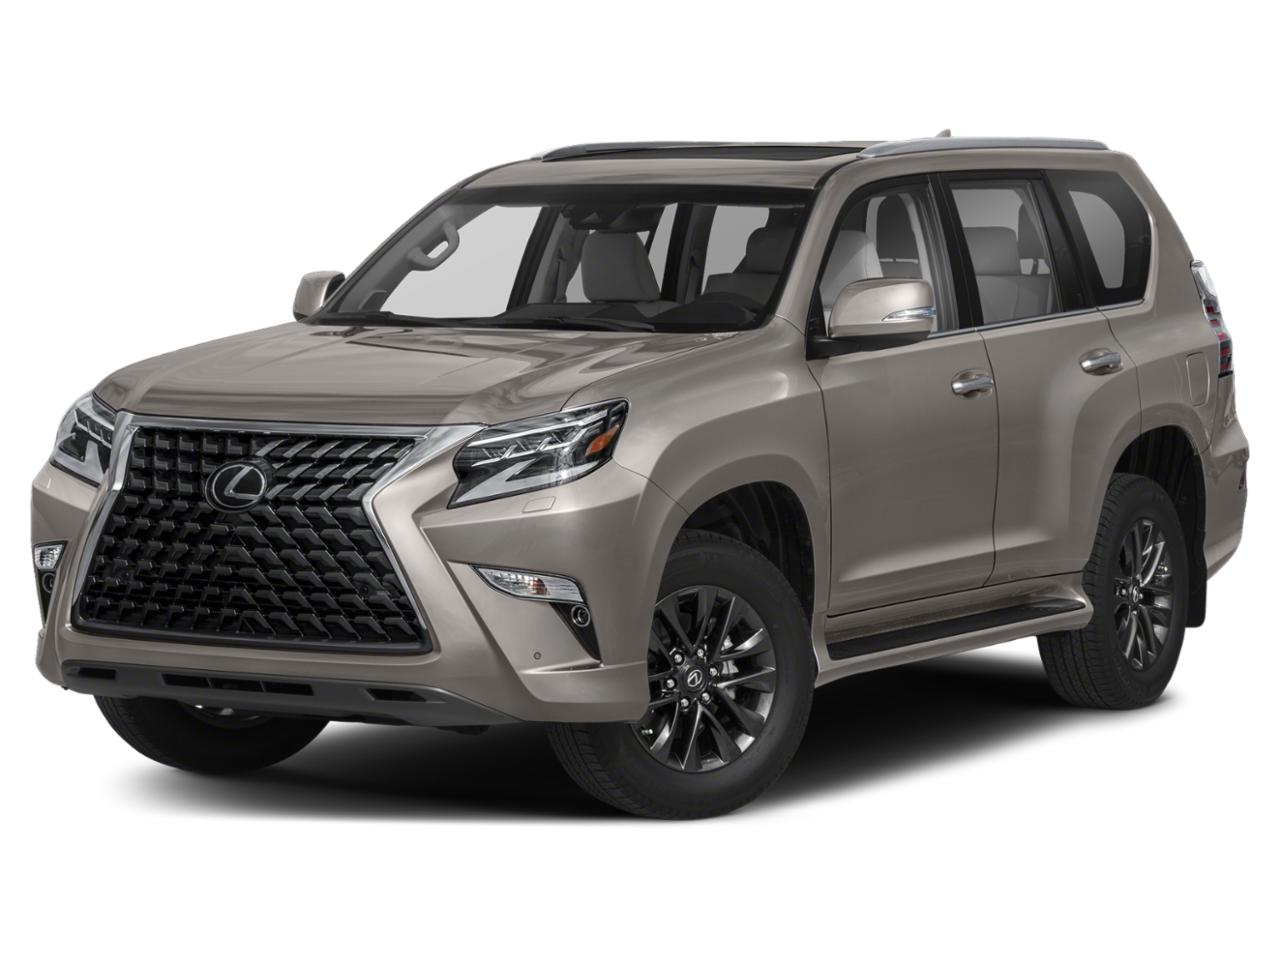 2020 Lexus GX Vehicle Photo in Fort Worth, TX 76132